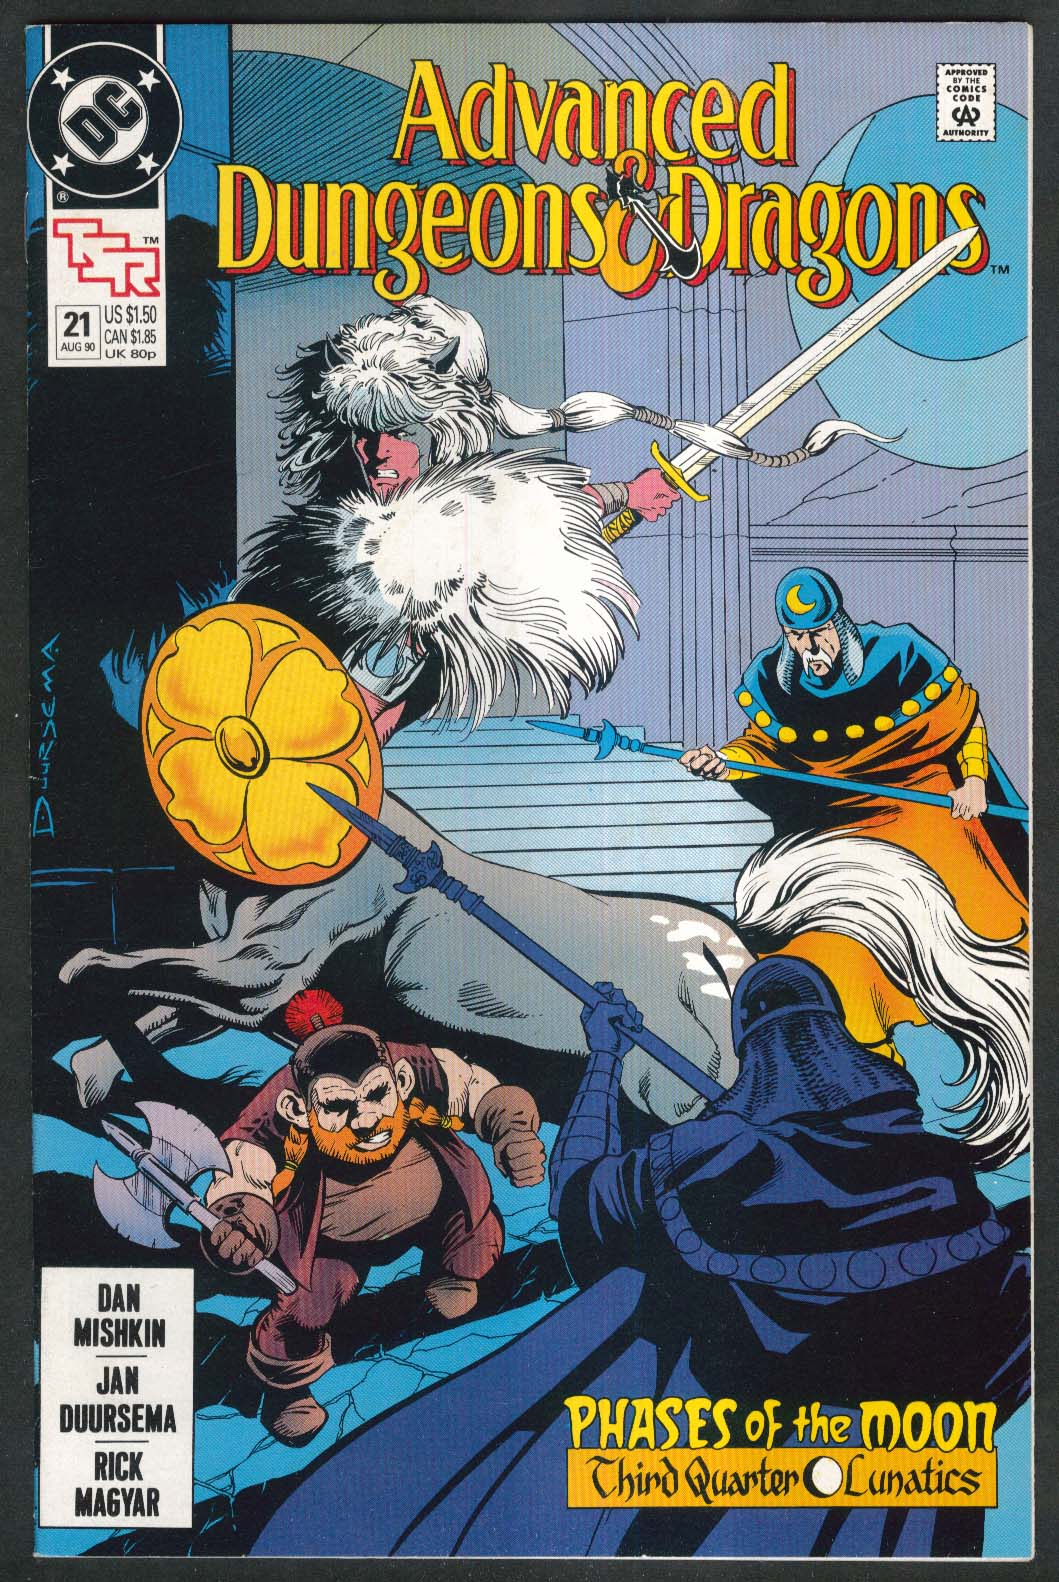 ADVANCED DUNGEONS & DRAGONS #21 DC comic book 8 1990 TSR